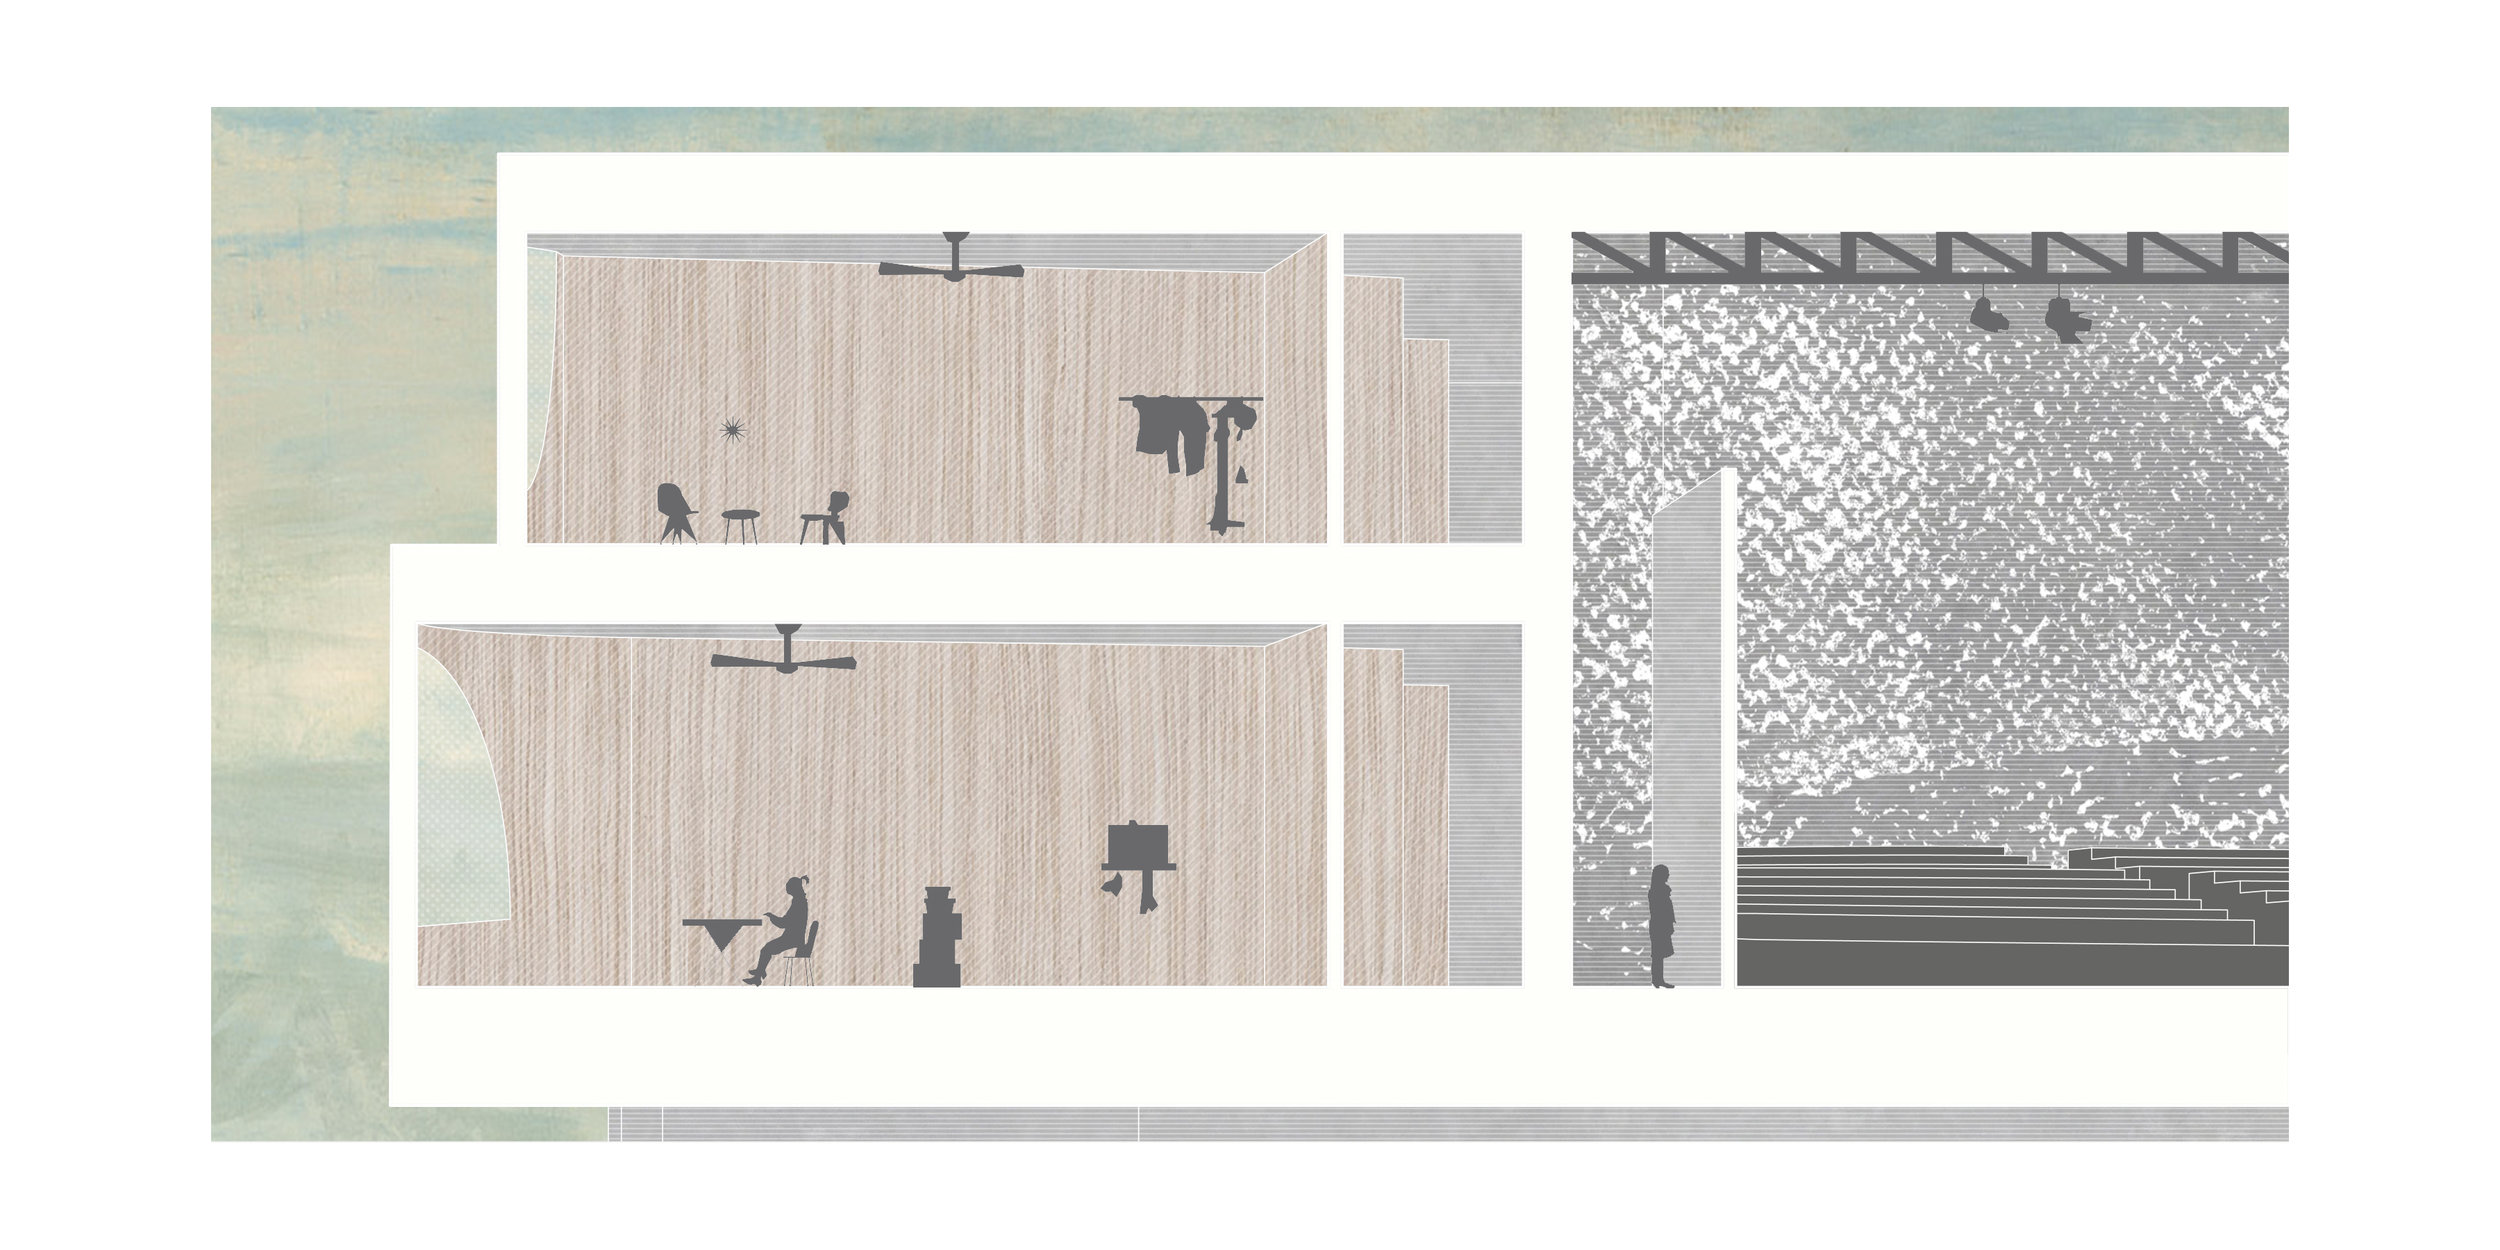 Sectional renderings through double loaded corridors: East-facing practice rooms and Studio Theater